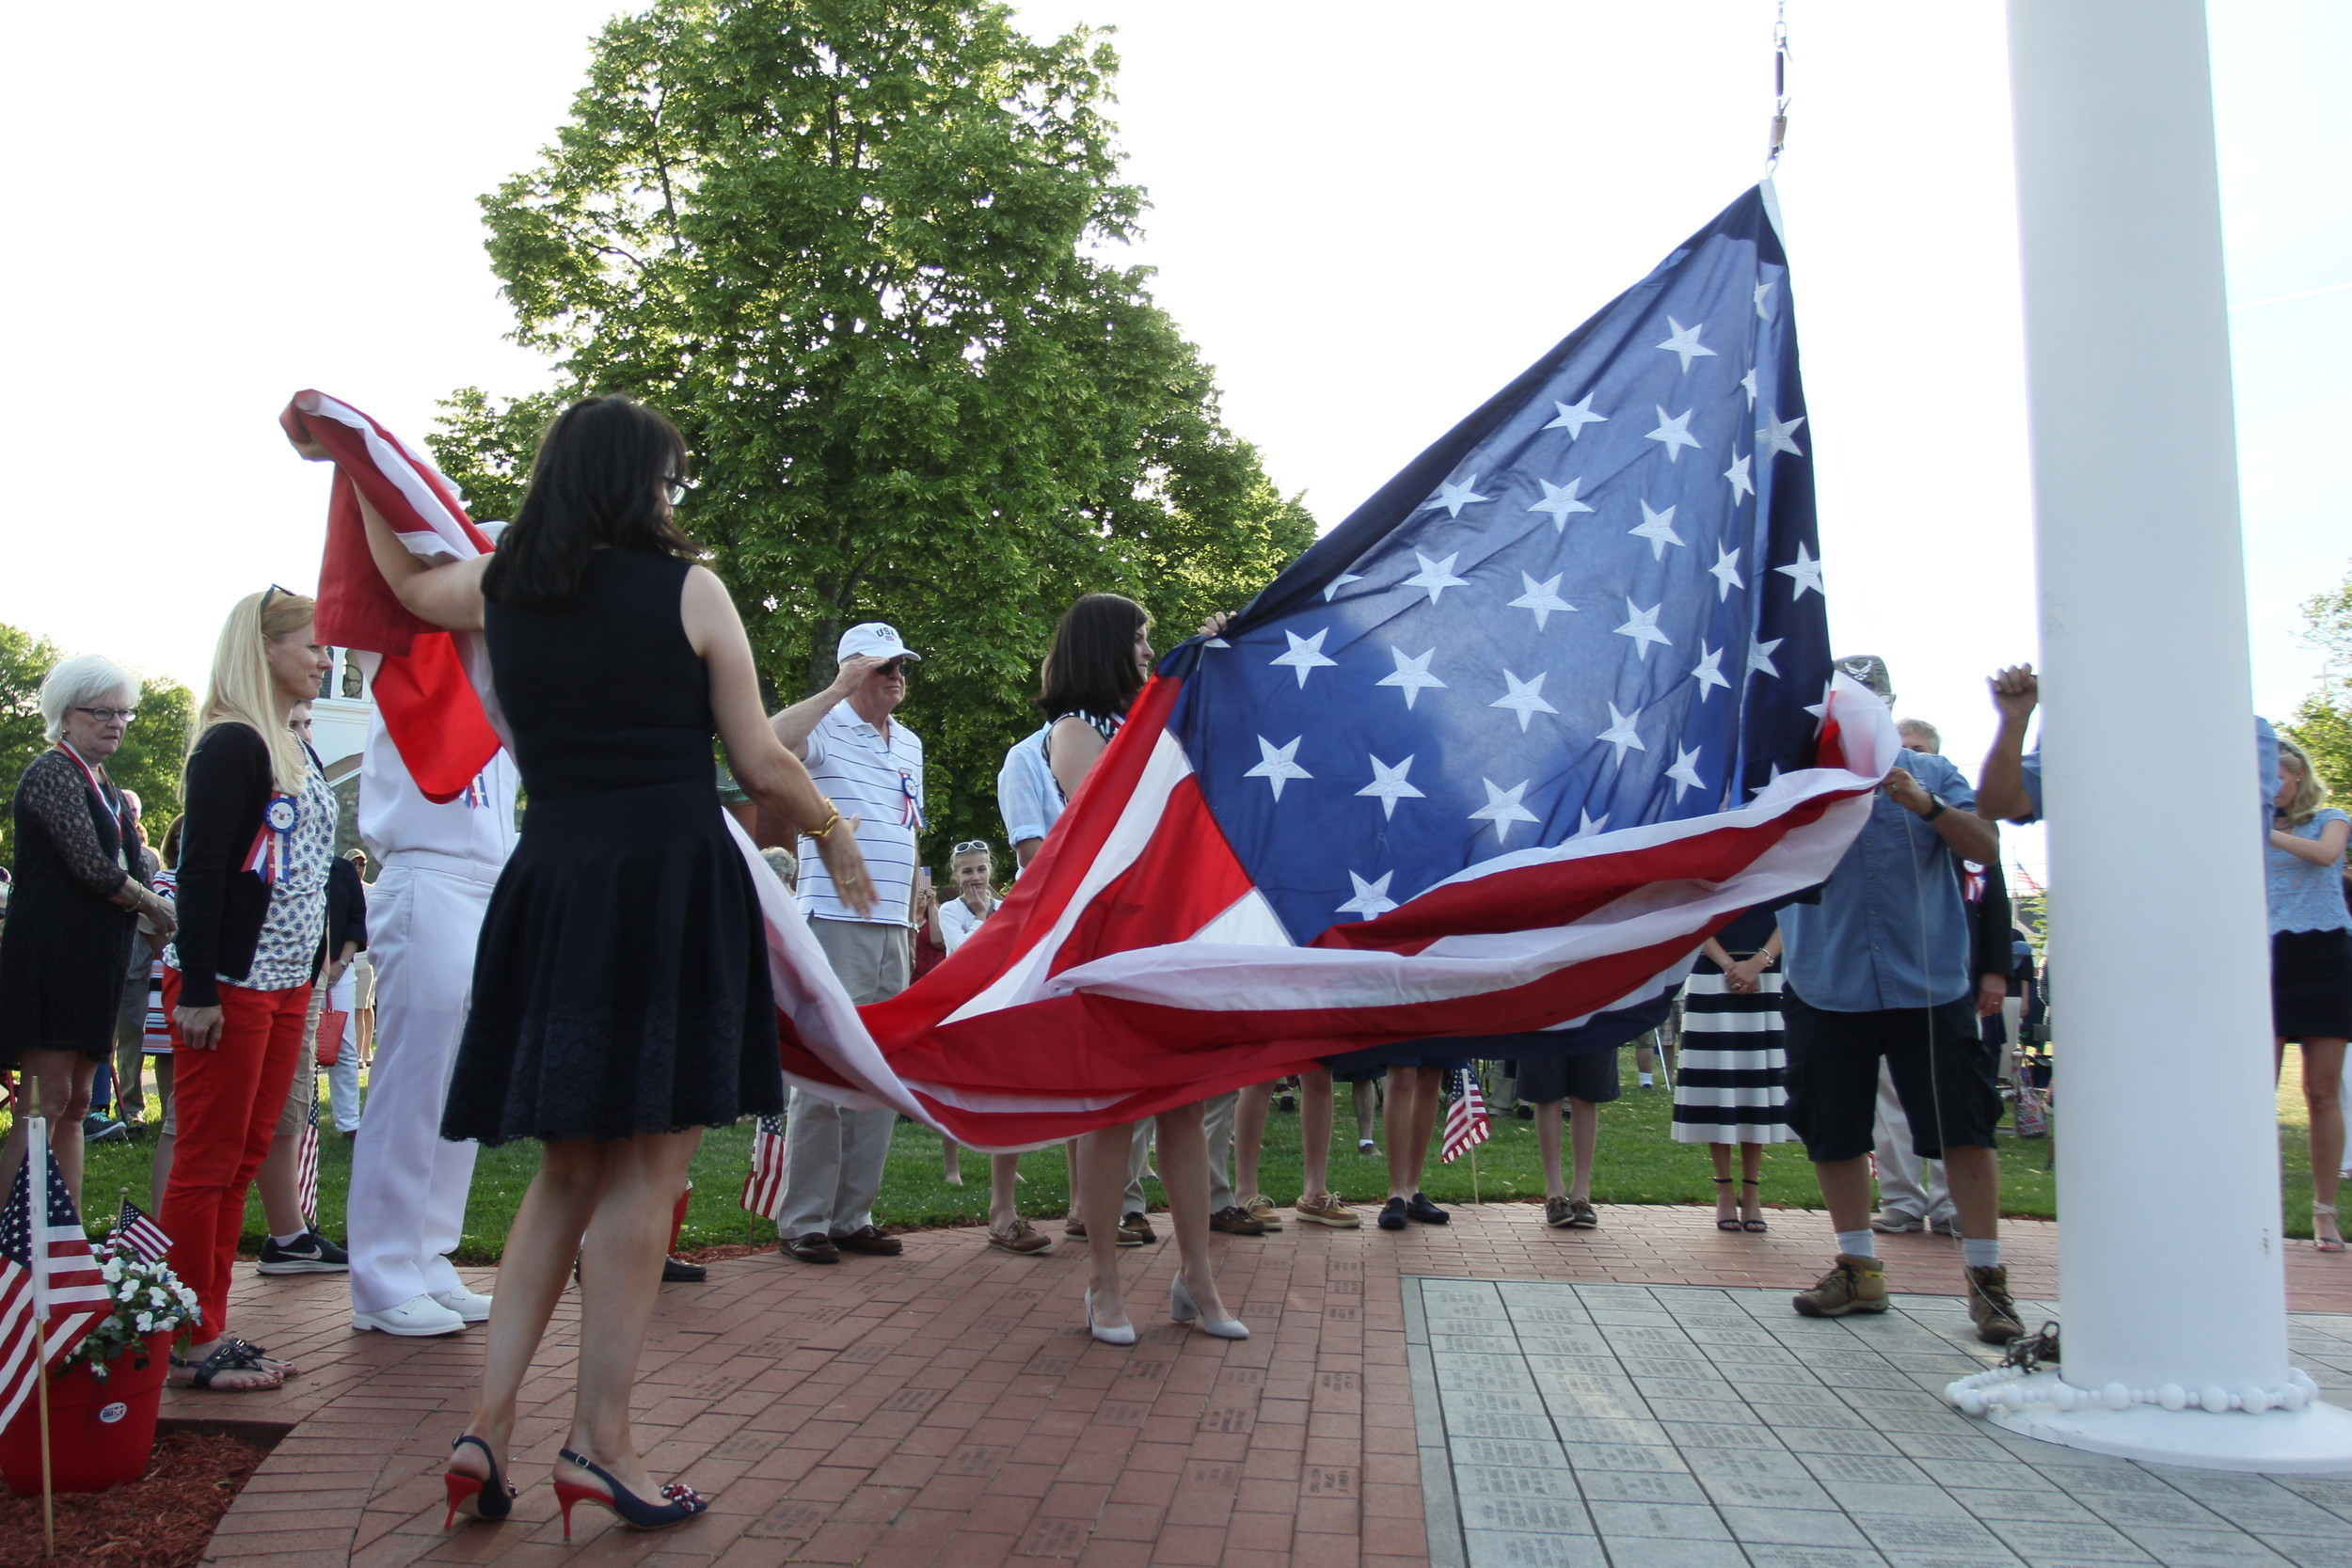 Chief Marshals Lisa Sienkiewicz and Gail Parella unfurl the American flag that now flies over Bristol Town Common.